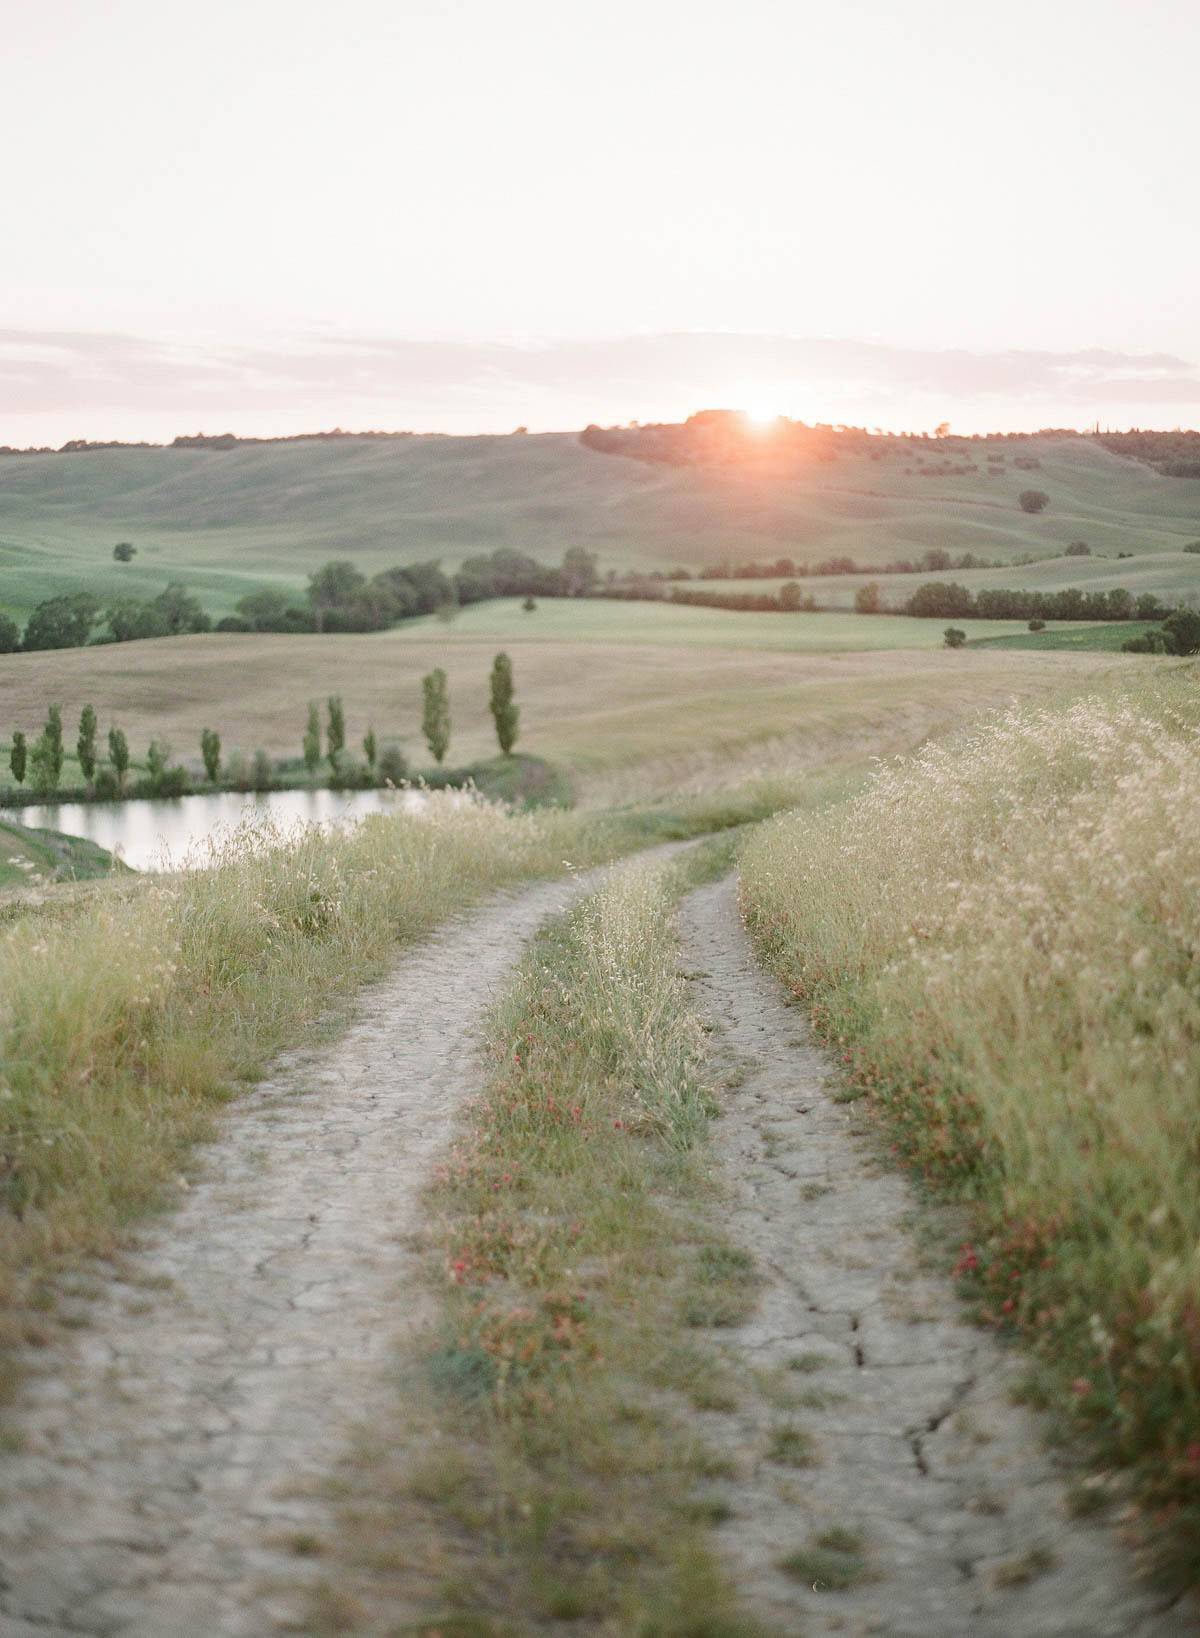 Tuscany in the Summer: Superbly Romantic Honeymoon Spot